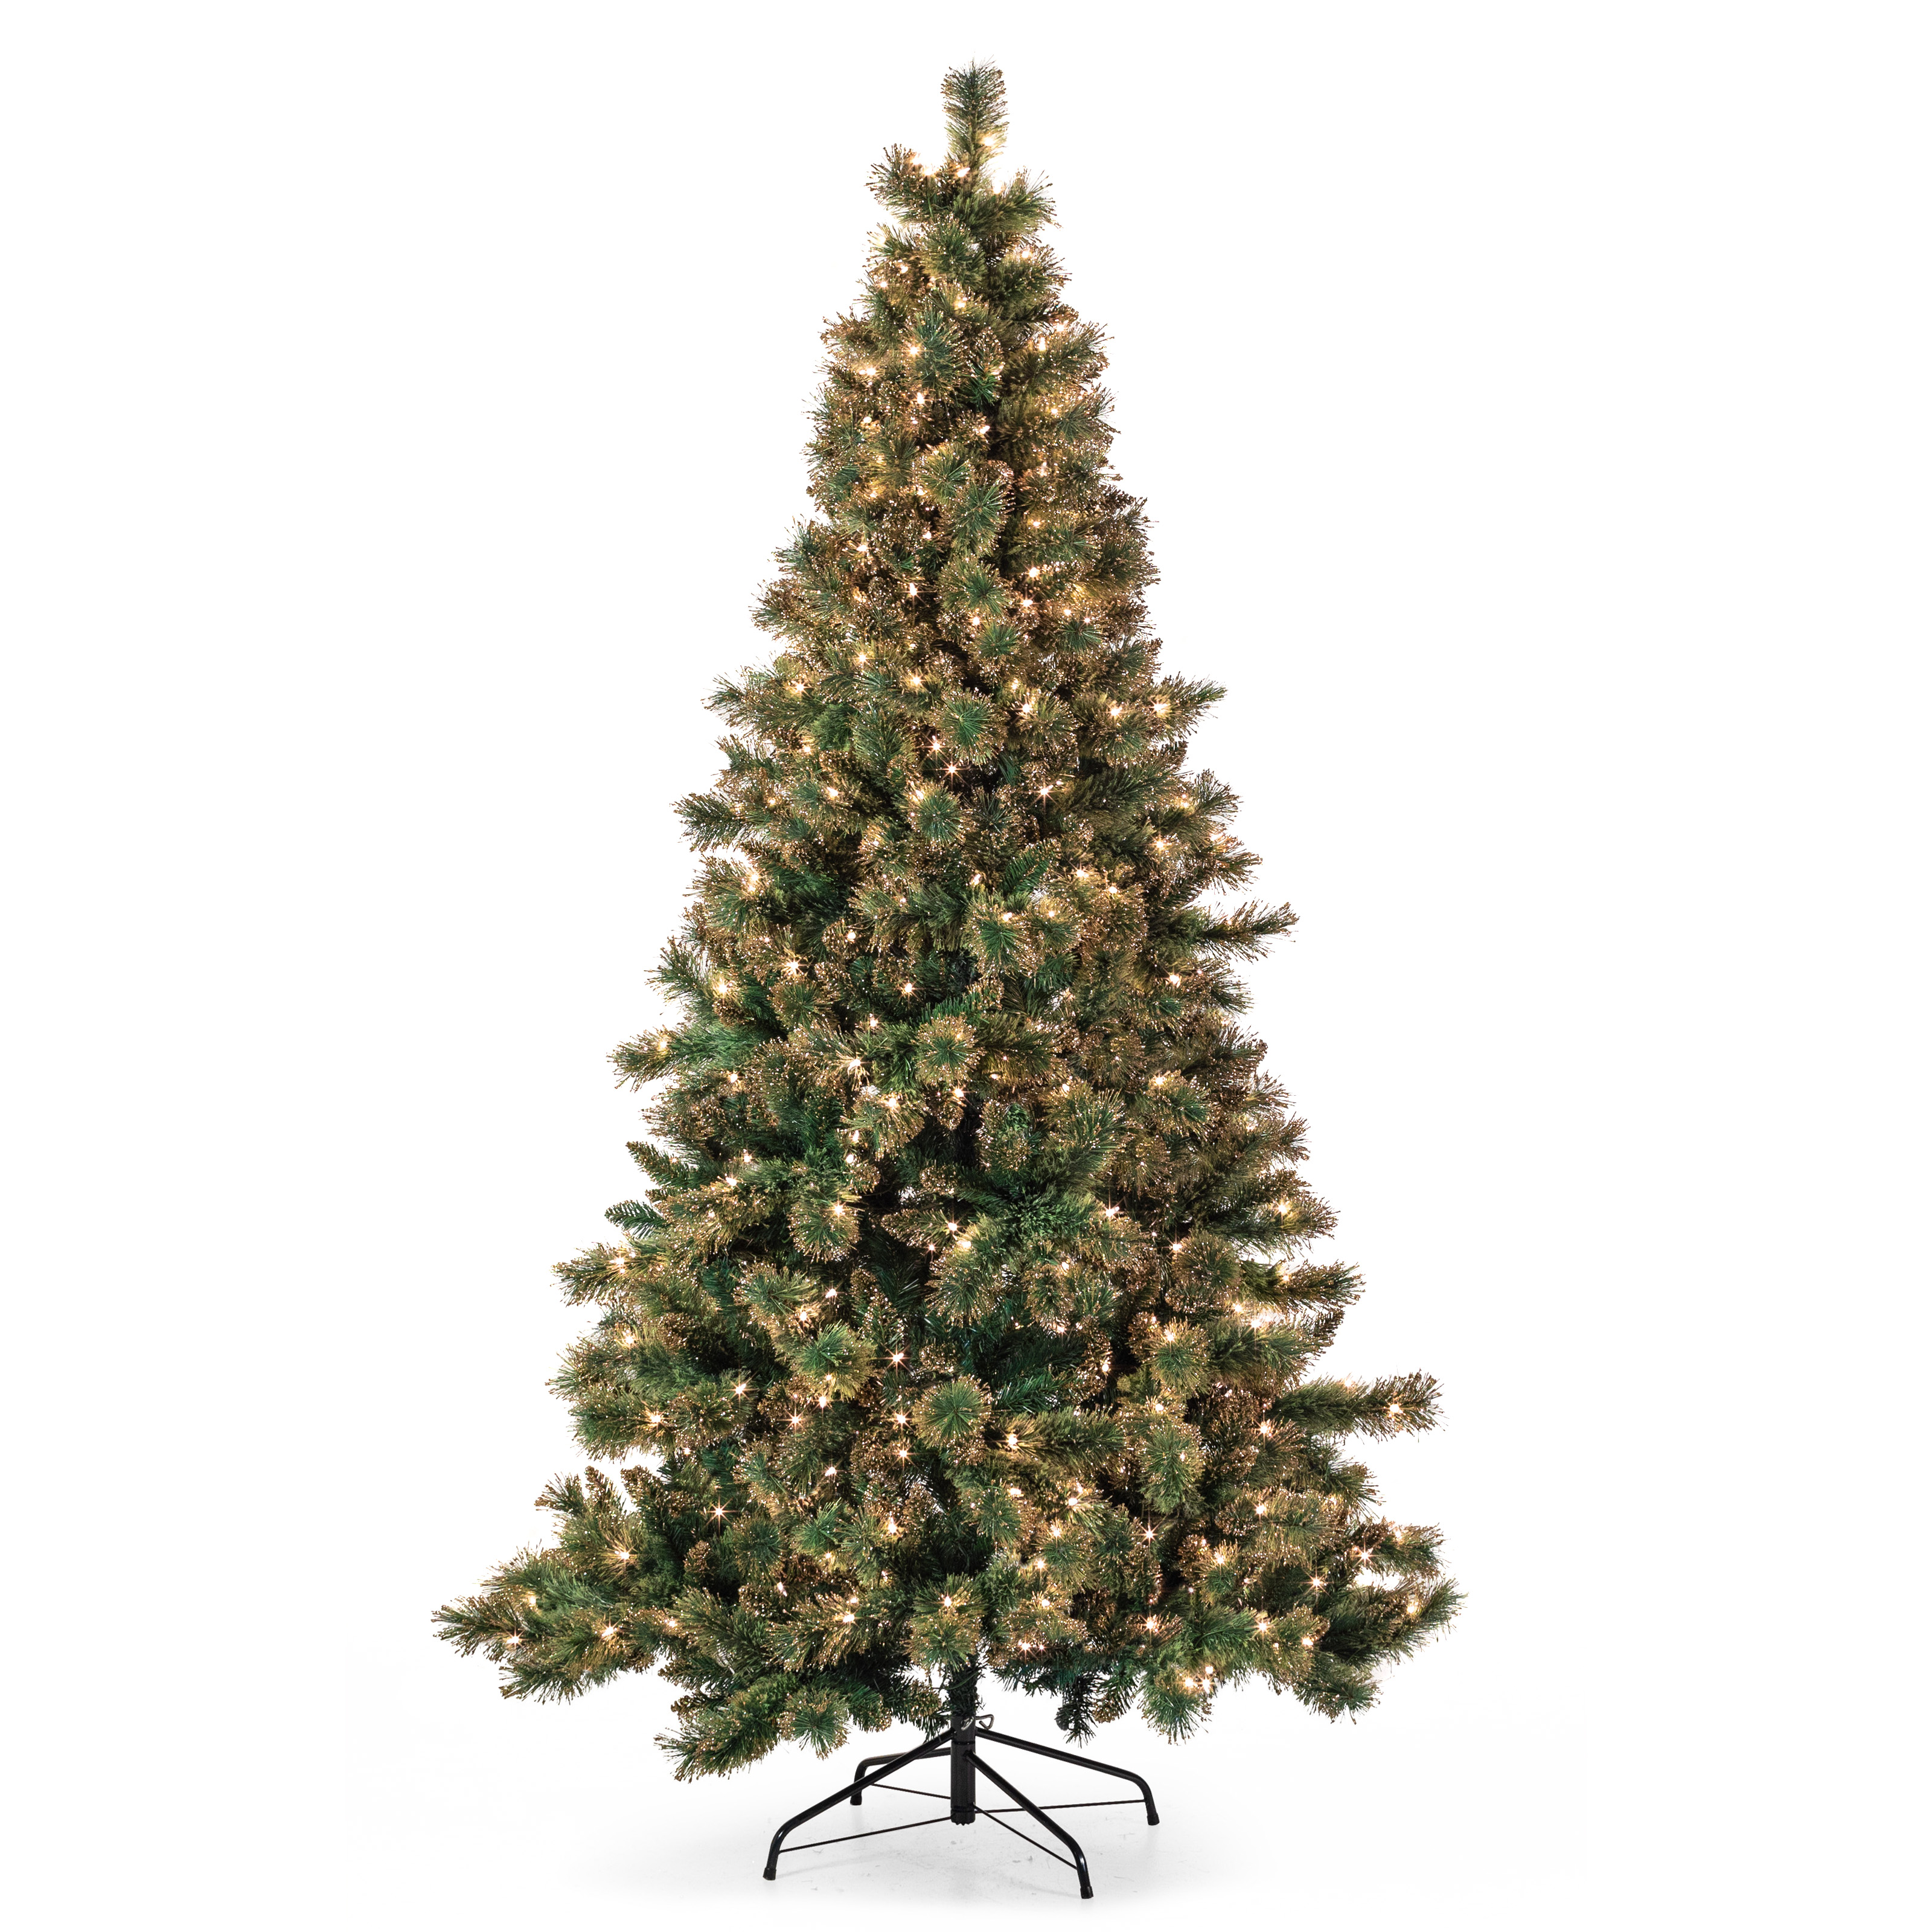 Belham Living 7 5ft Pre Lit Gold Dusted Artificial Christmas Tree With Clear Lights Green